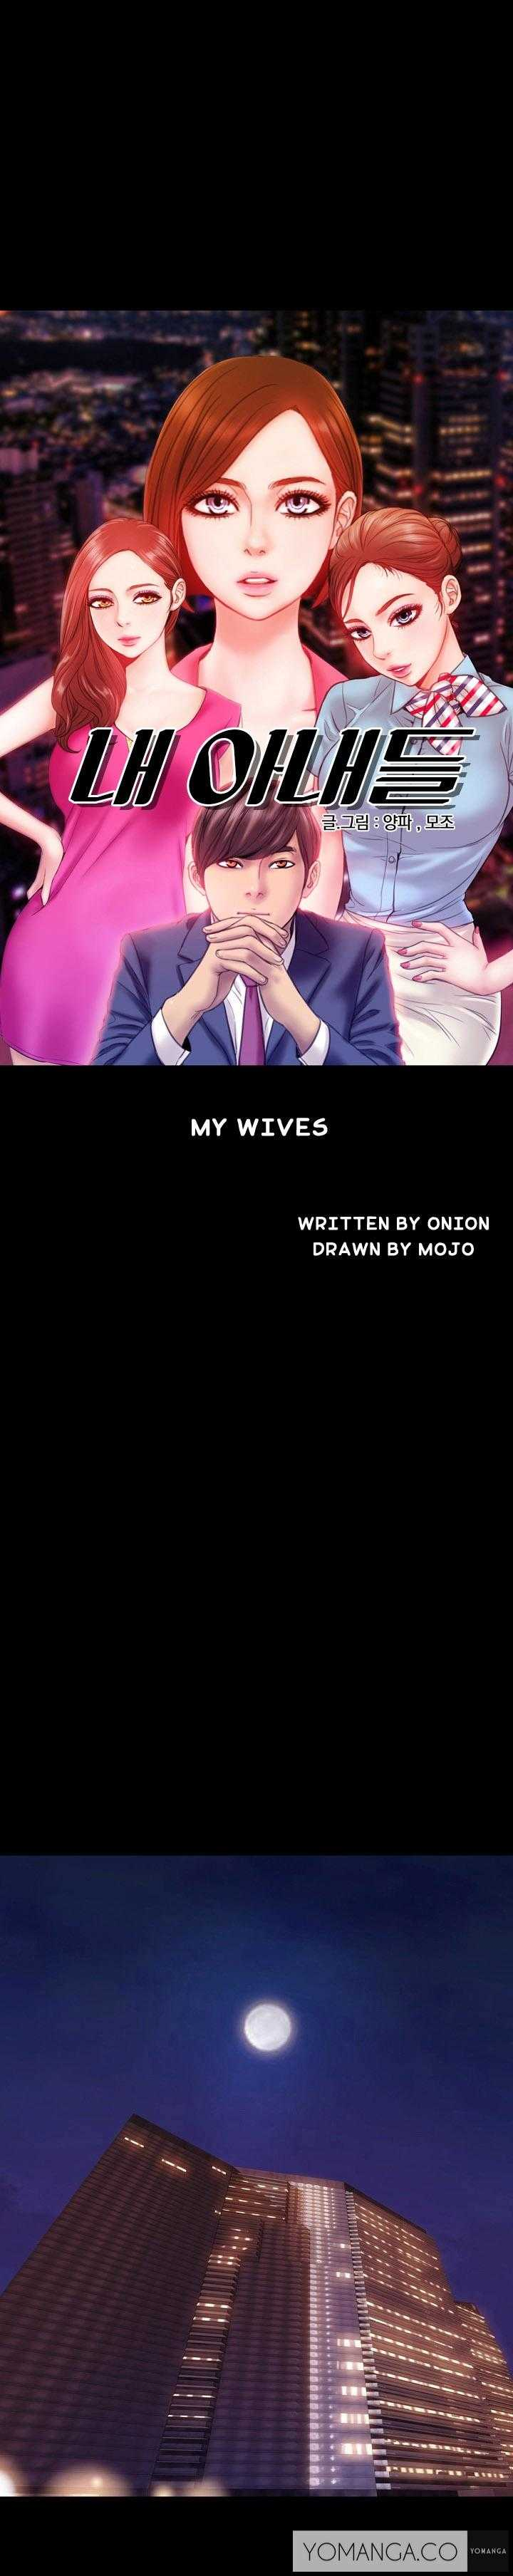 [Mojo] My Wives Ch.1-44 (English) page 31